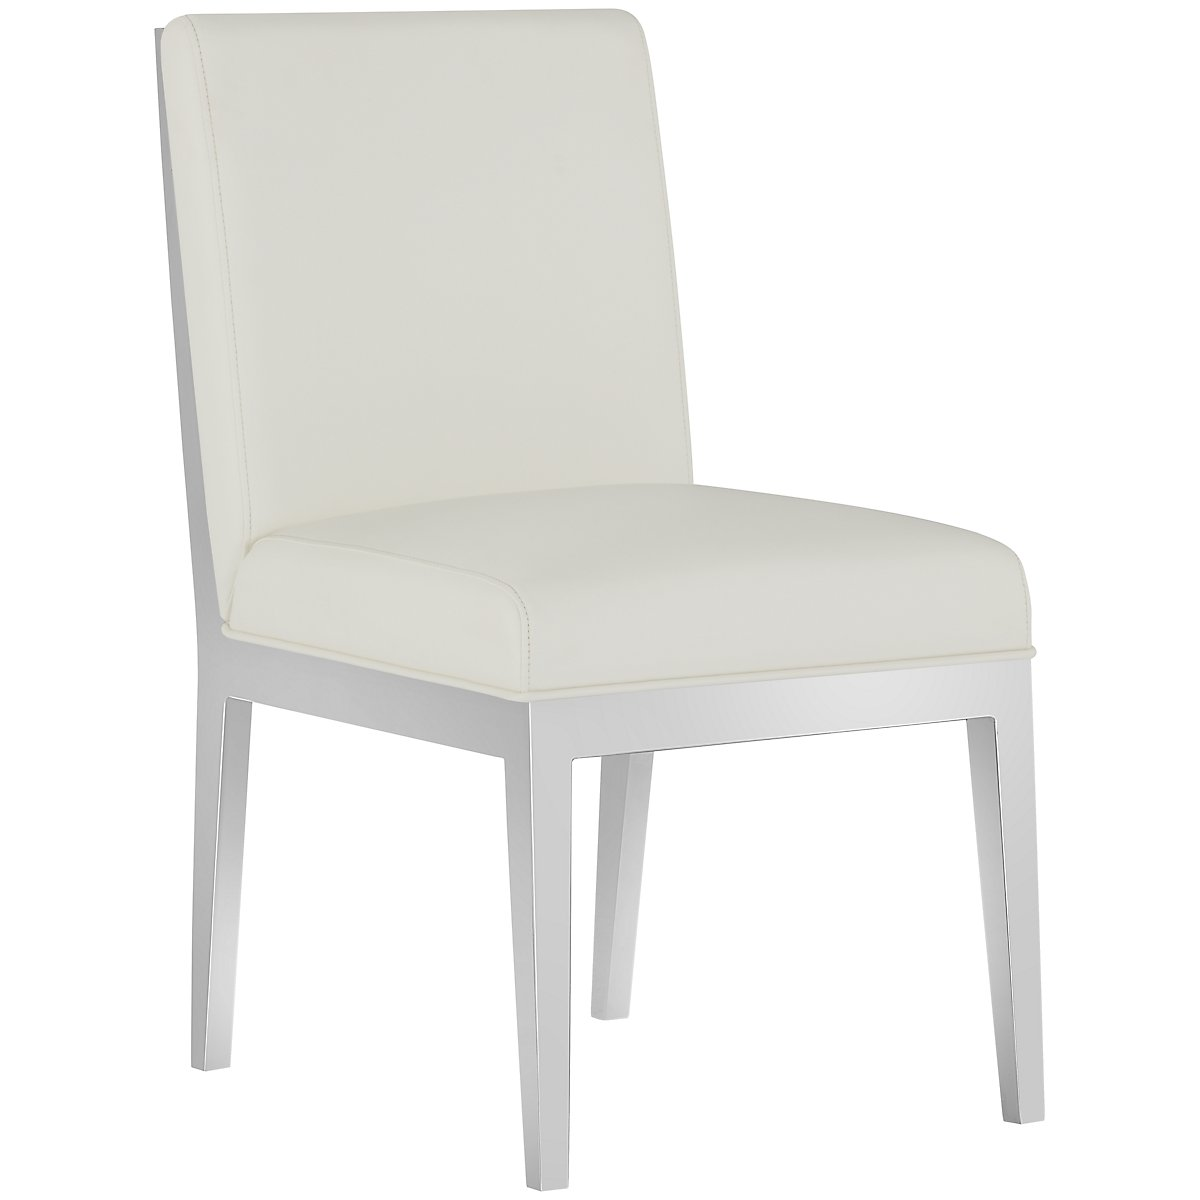 Neo White Upholstered Upholstered Side Chair